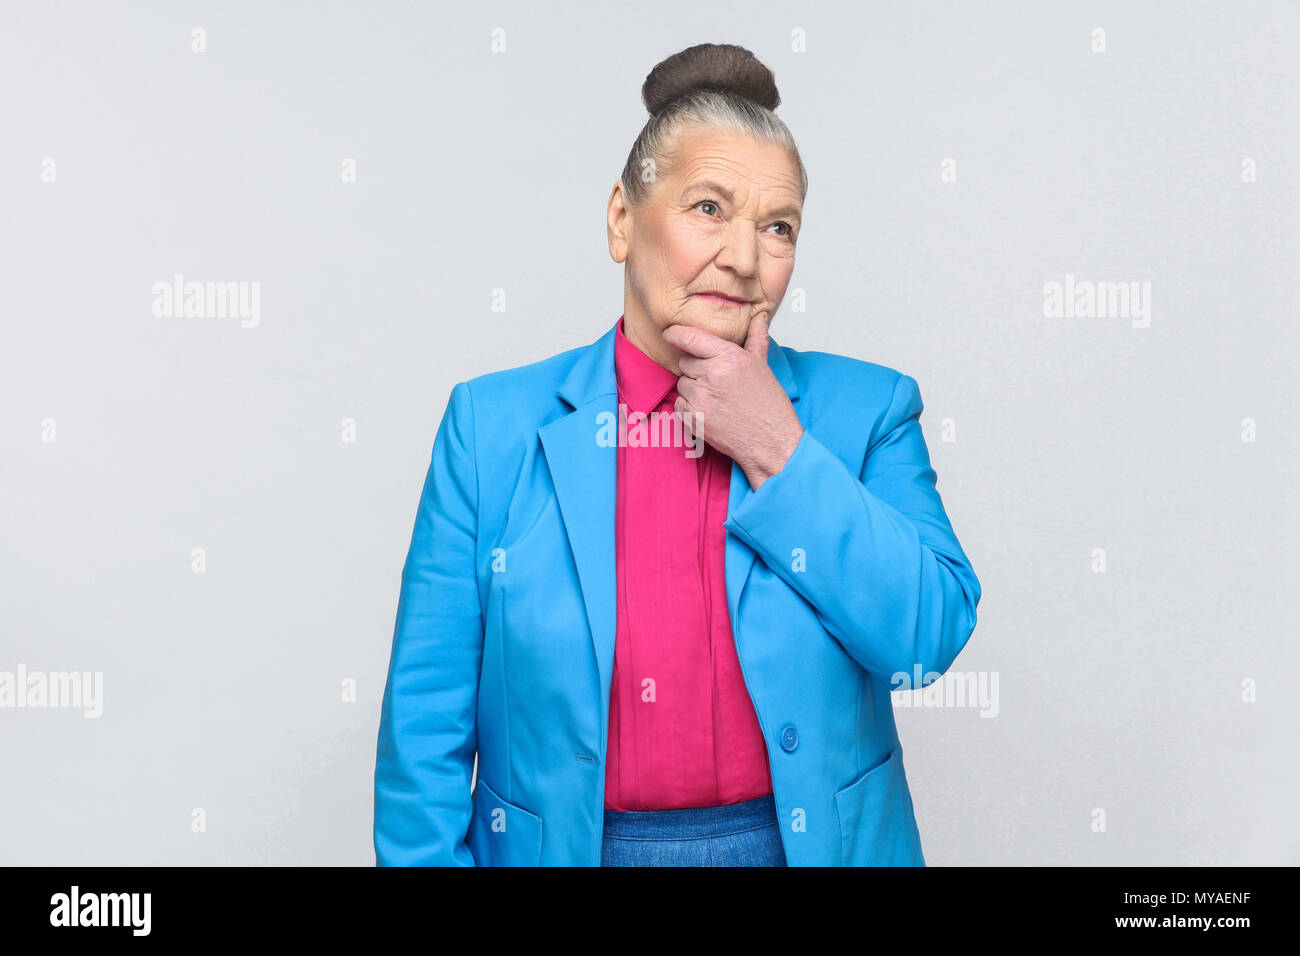 Puzzled woman thinking and touching chin. Emotion and feelings expressive grandmother with light blue suit and pink shirt standing with bun gray hairs Stock Photo